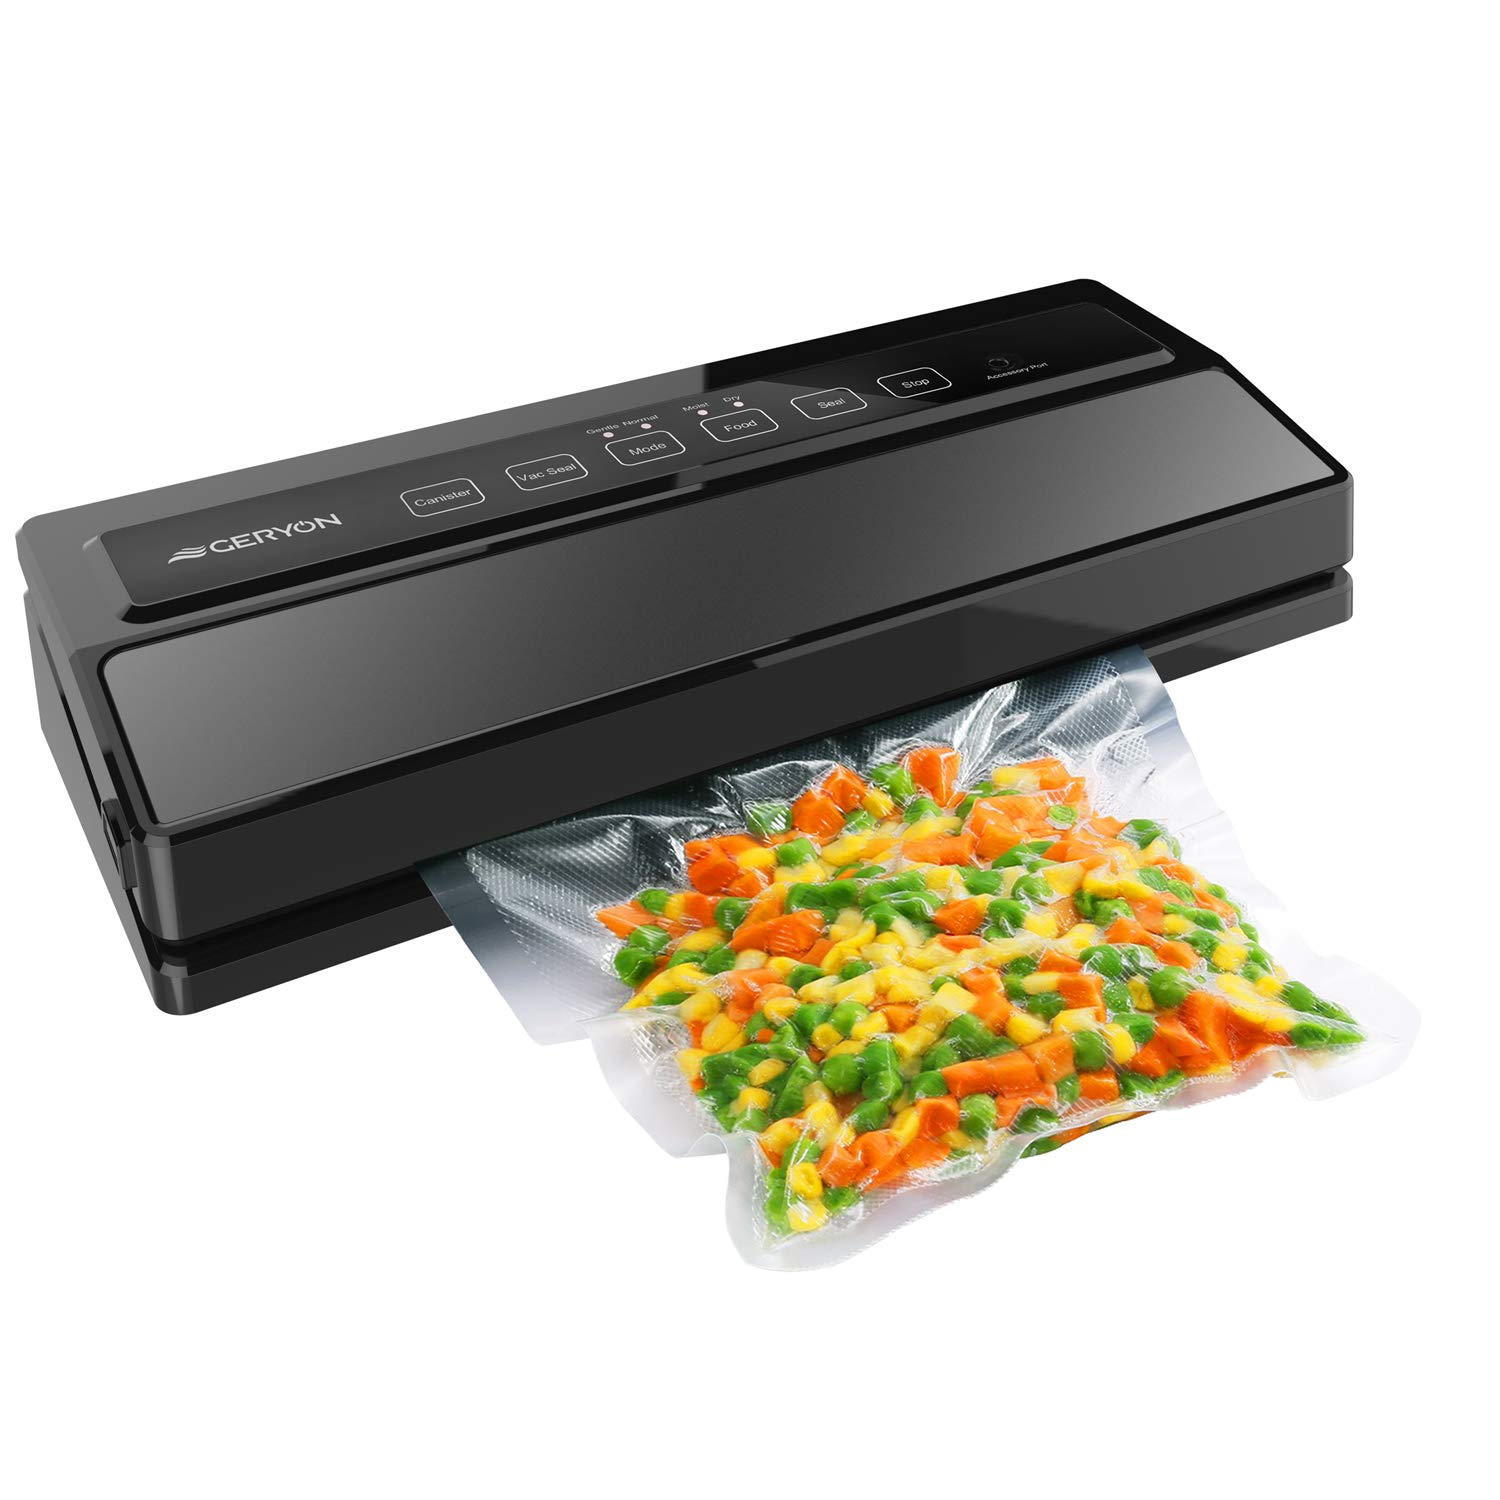 GERYON Vacuum Sealer, Automatic Food Sealer Machine for Food Savers w/Starter Kit|Led Indicator Lights|Easy to Clean|Dry & Moist Food Modes| Compact Design (Black) by GERYON